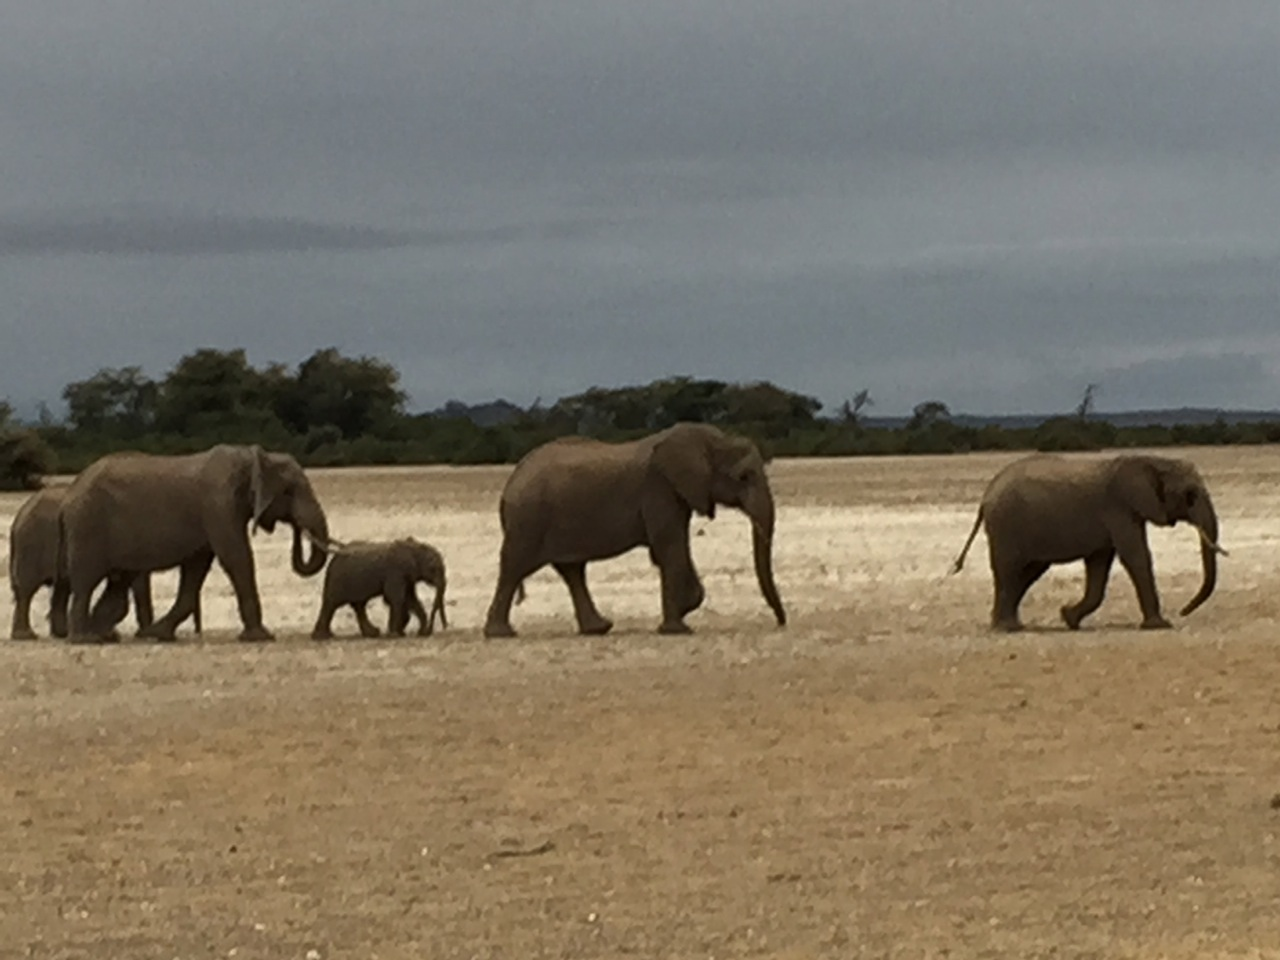 Elephant herd I photographed from our safari vehicle in the foothills of Mt. Kilimanjaro.